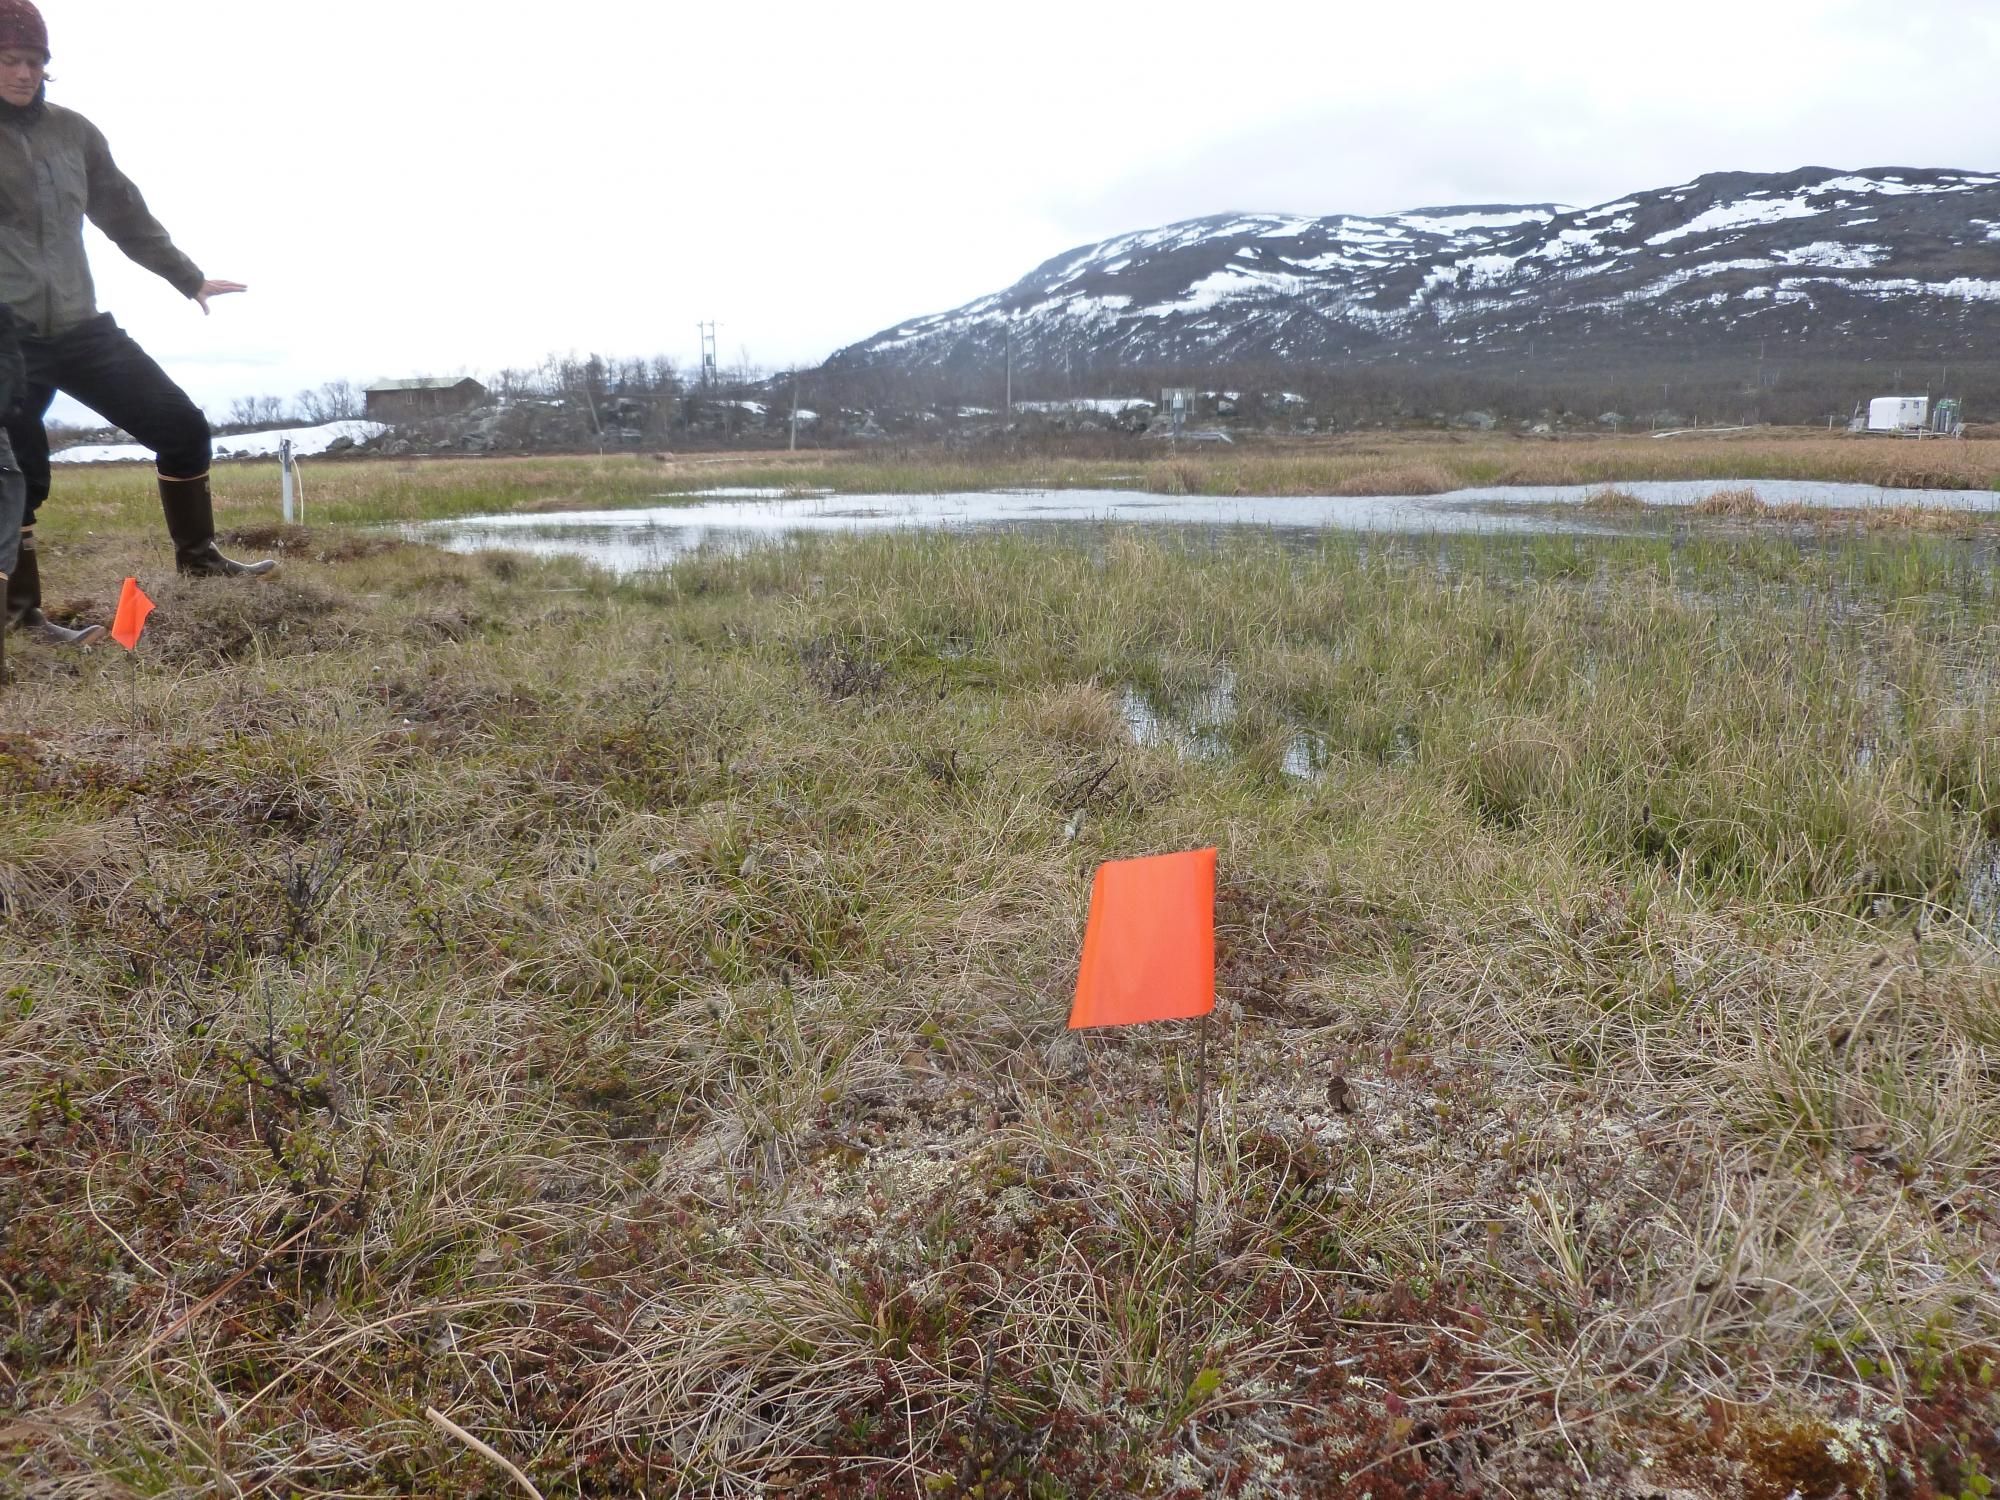 Flags are placed to designate sampling locations at the field site in Sweden. Rose Vining is working with Moira Hough  as part of a research team investigating permafrost, which is thawing under the effect of a changing climate.